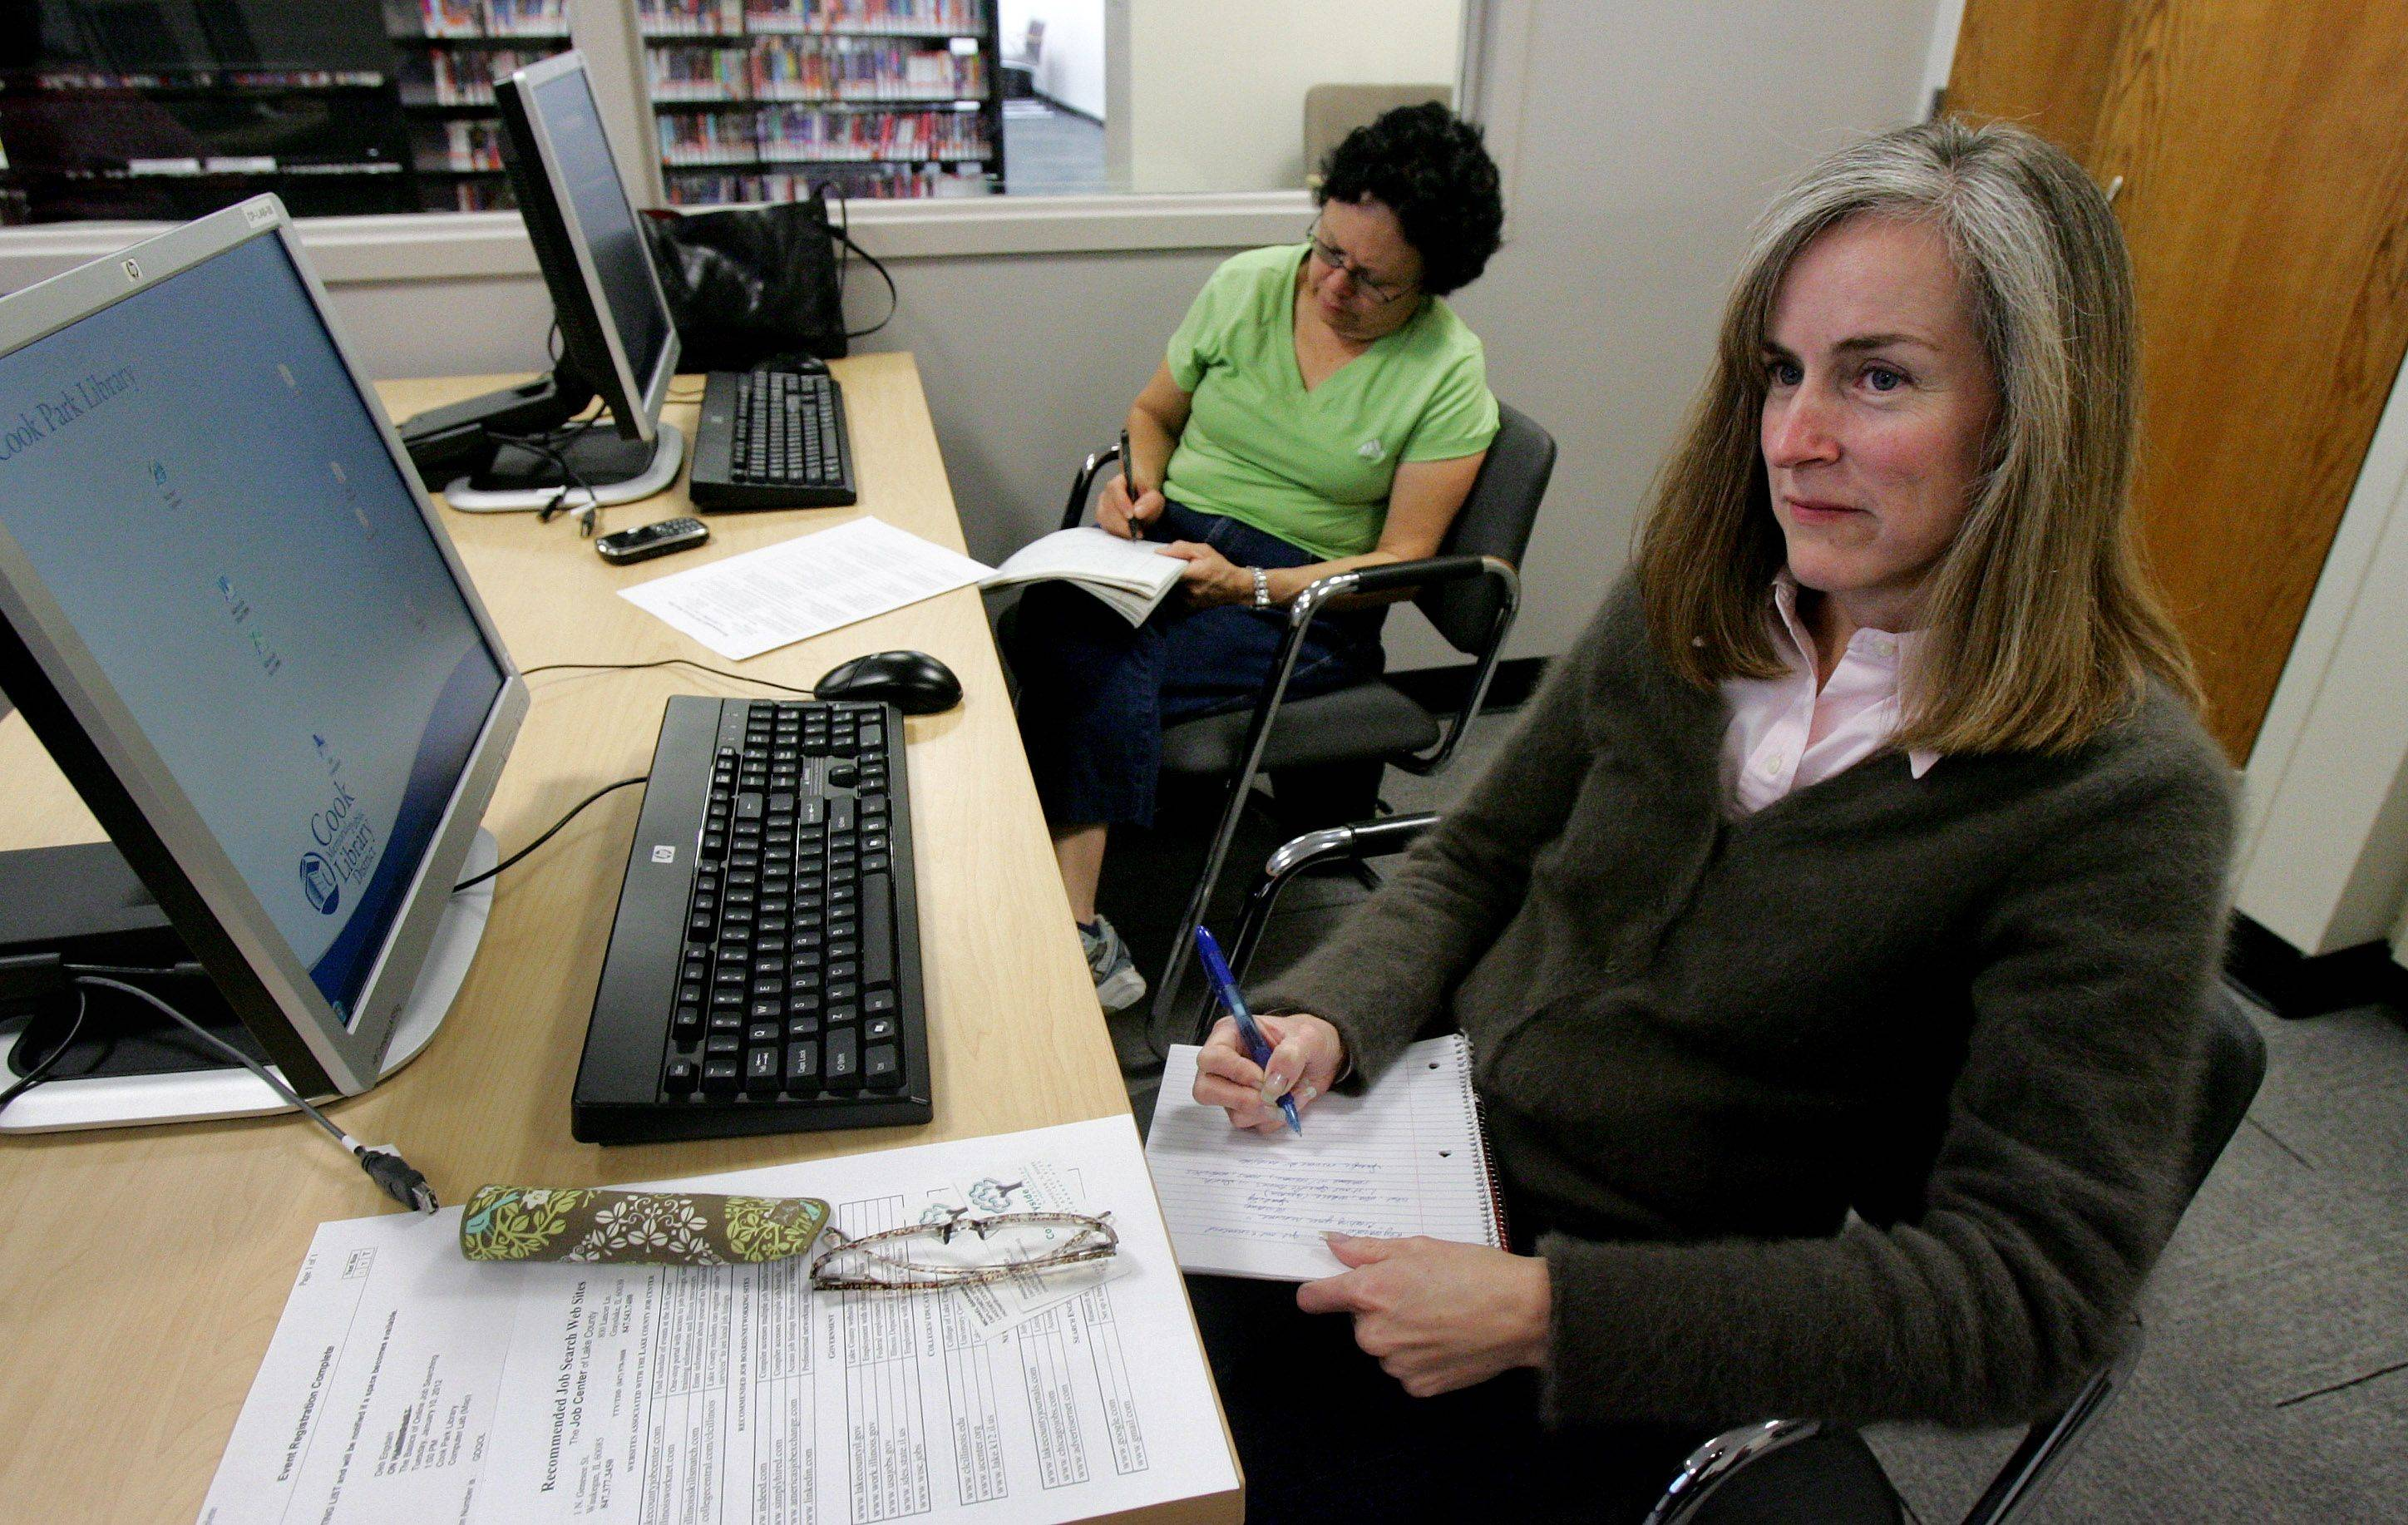 Debbie Engdahl of Mundelein, right, and Ethel Pickar of Libertyville take notes during a jobs workshop Tuesday at the Cook Park Library in Libertyville.